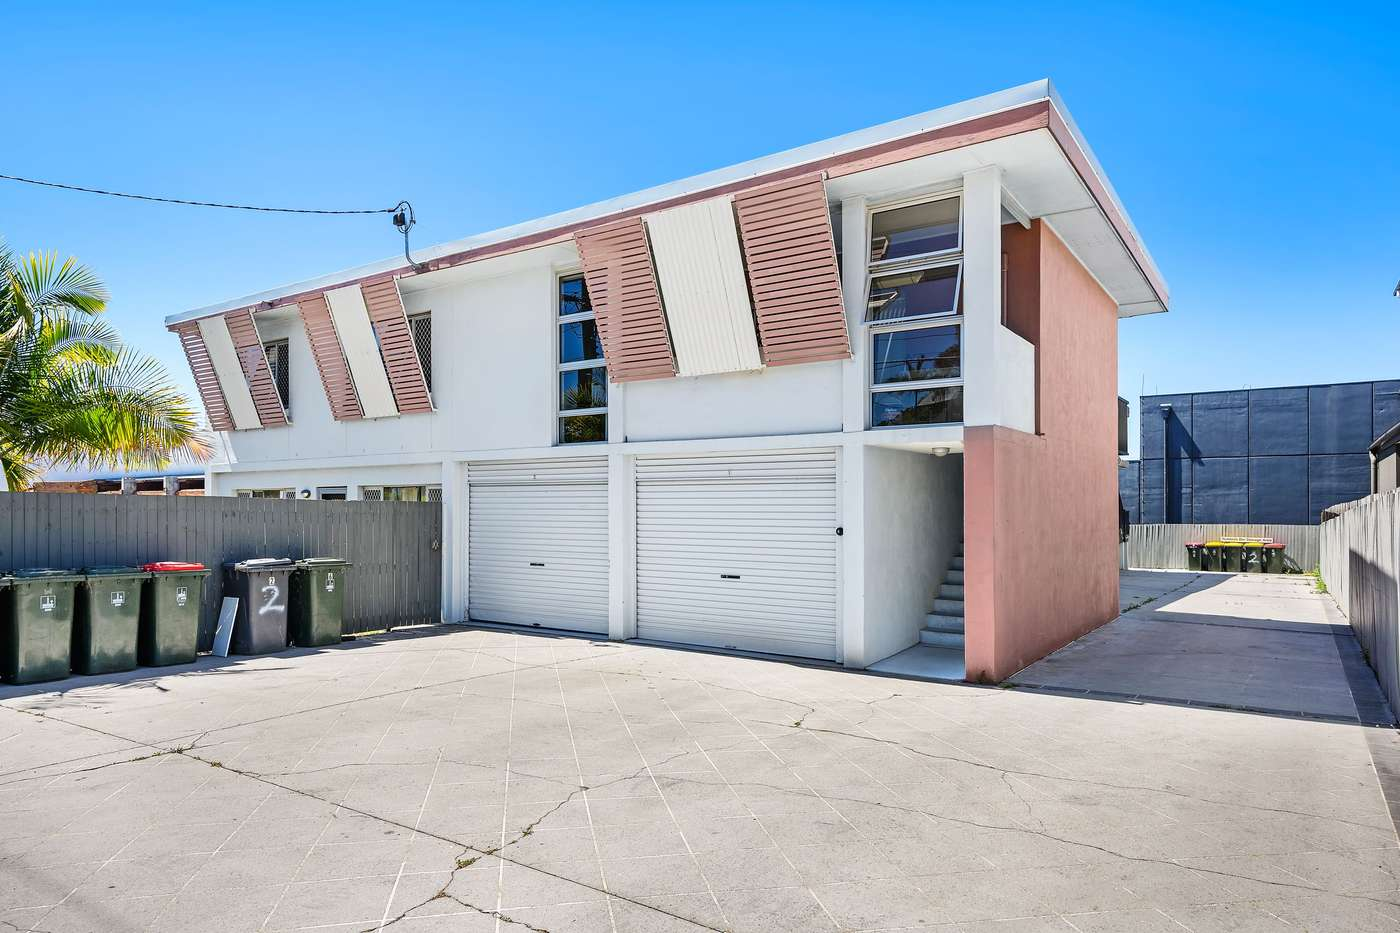 Main view of Homely unit listing, 4/15 Nieppe Street, Kedron, QLD 4031